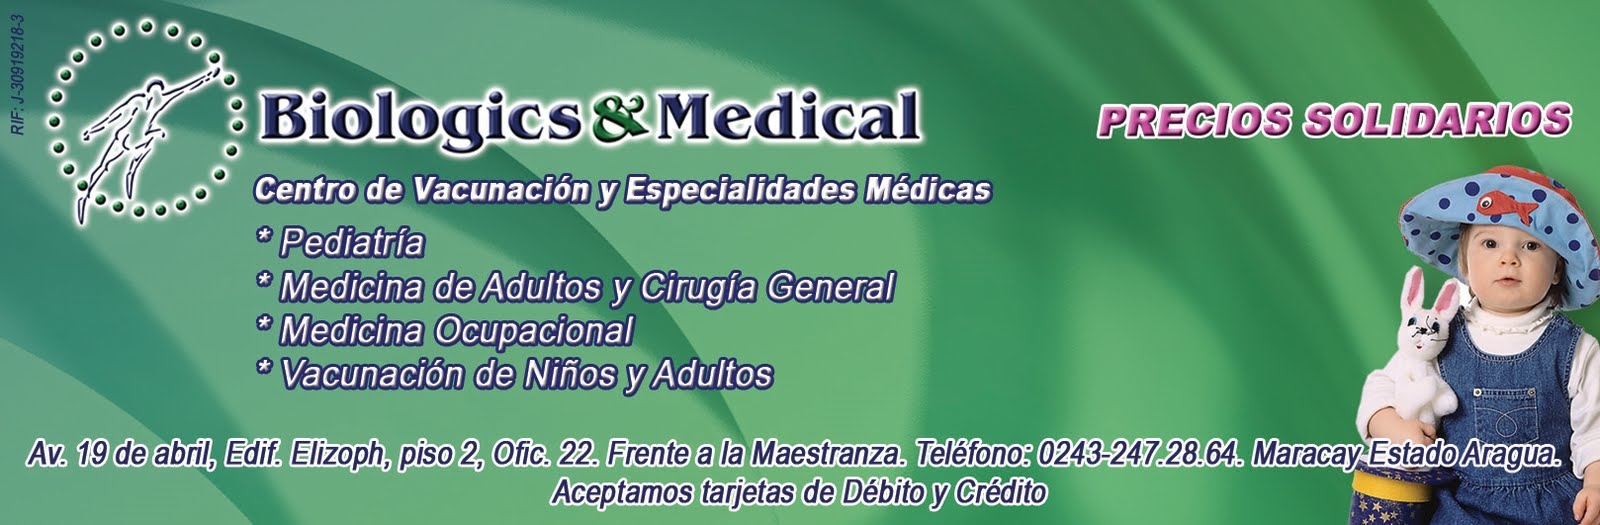 BIOLOGICS & MEDICAL, C.A. - Centro de Vacunación